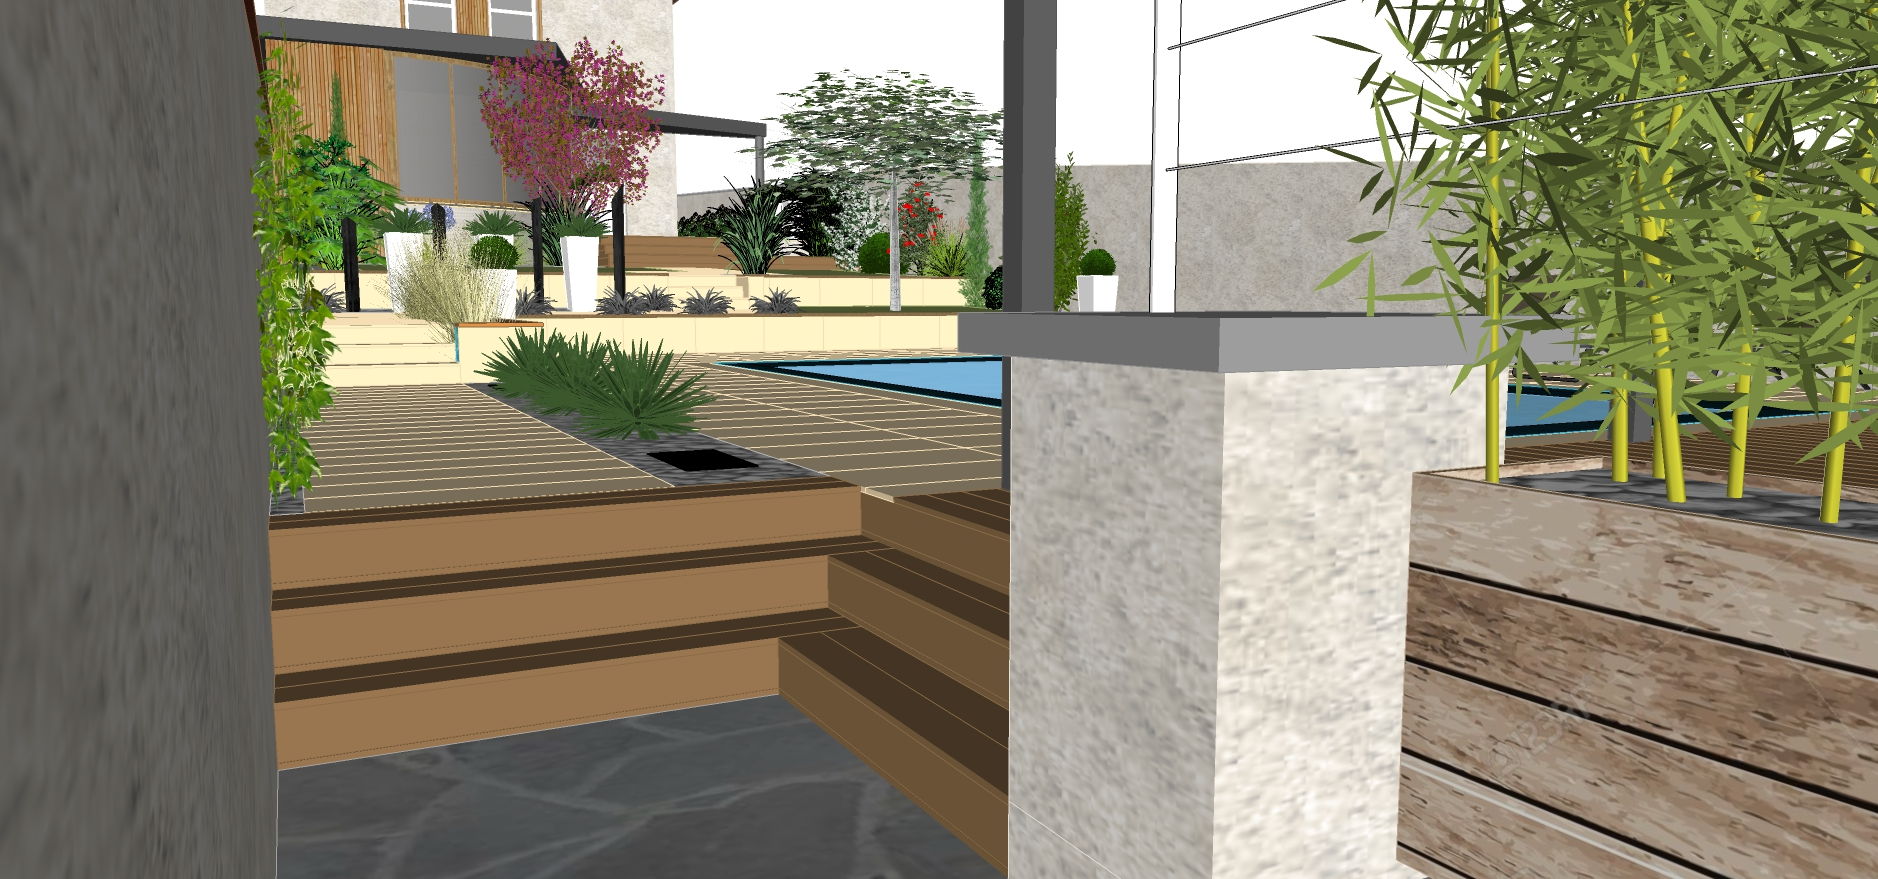 3d jardin paysagisme good architecte with 3d jardin for Architecte exterieur jardin